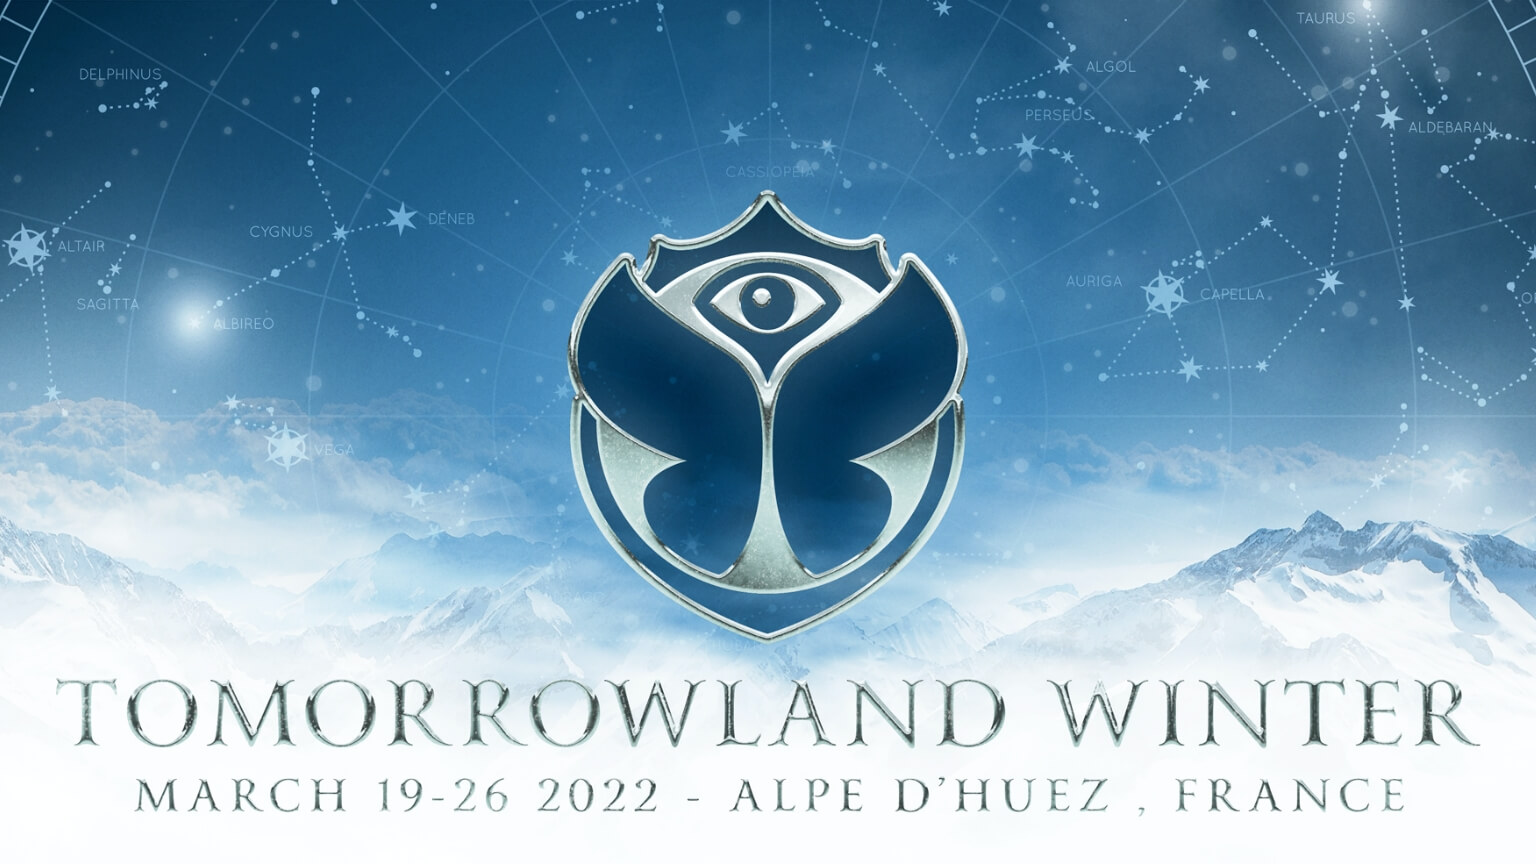 You are currently viewing Tomorrowland Winter 2022 in den Startlöchern